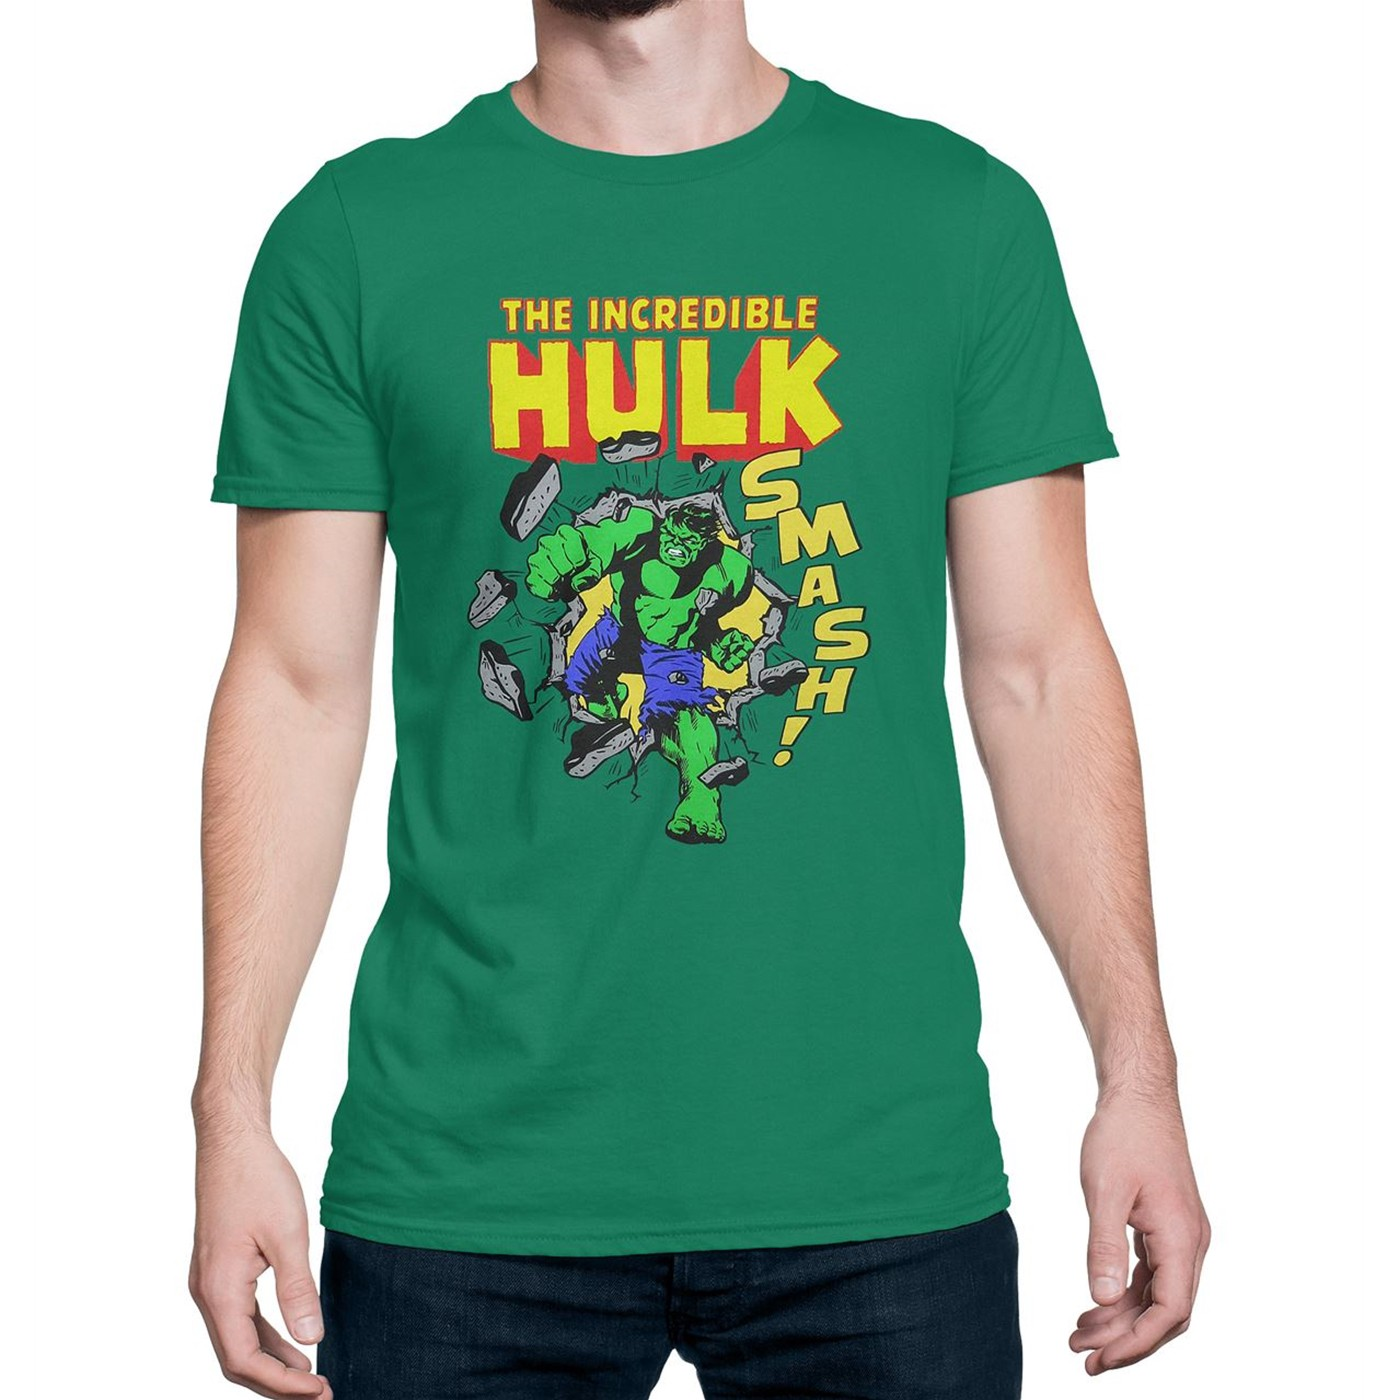 HULK Smashing Through Wall T-Shirt